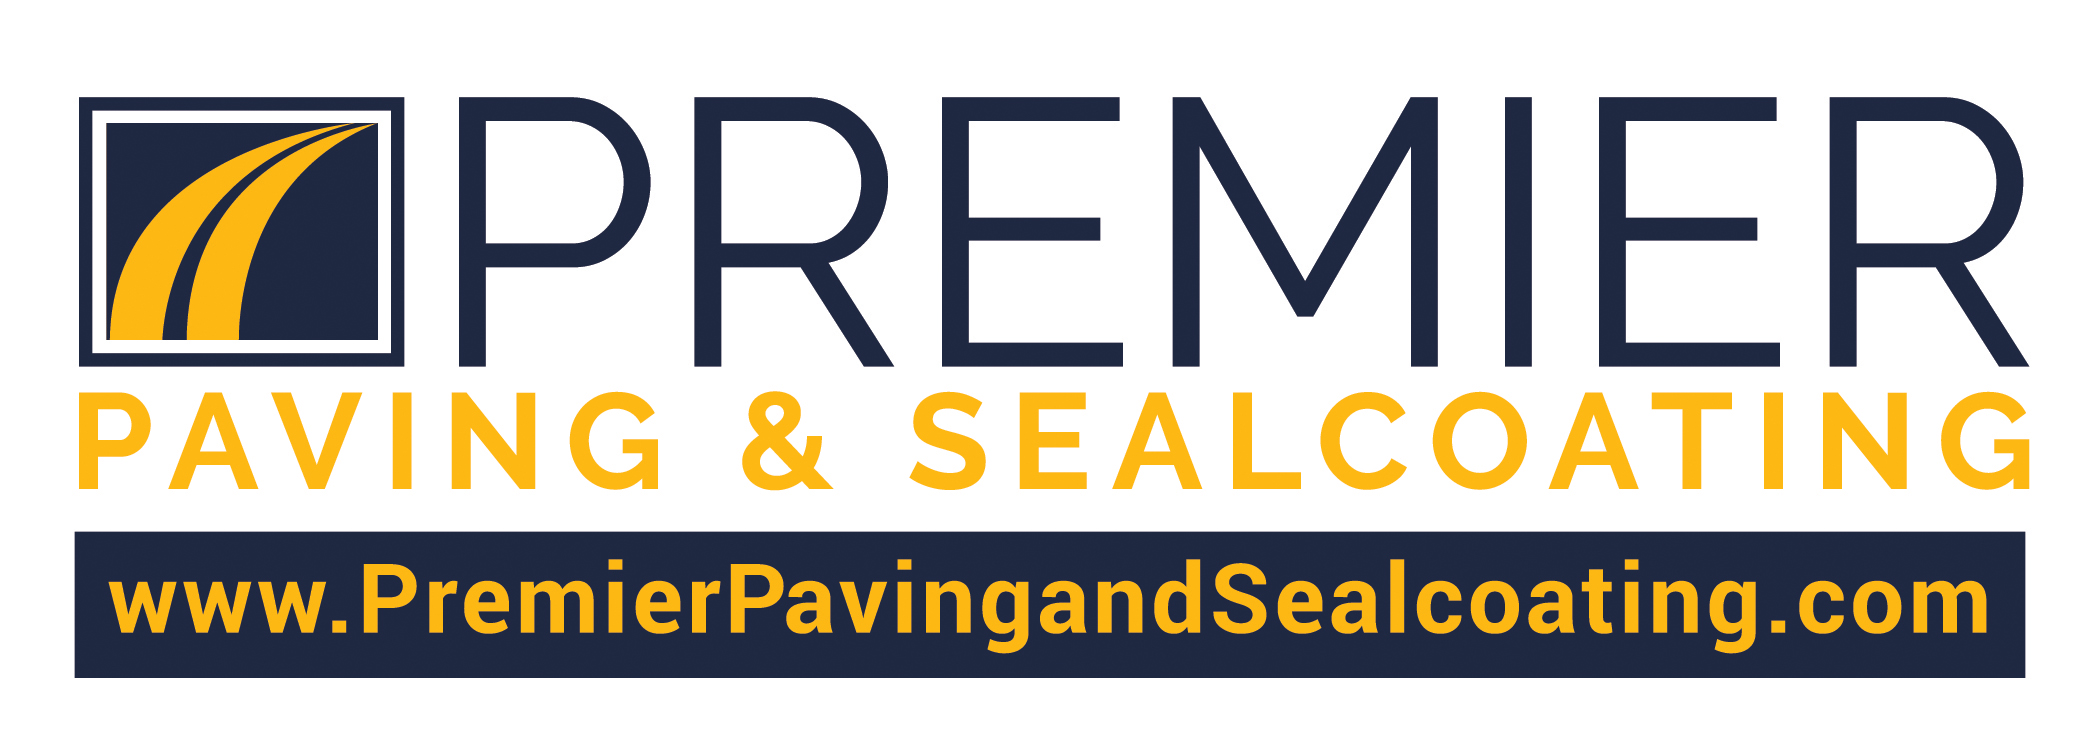 Premier Paving and Sealcoating